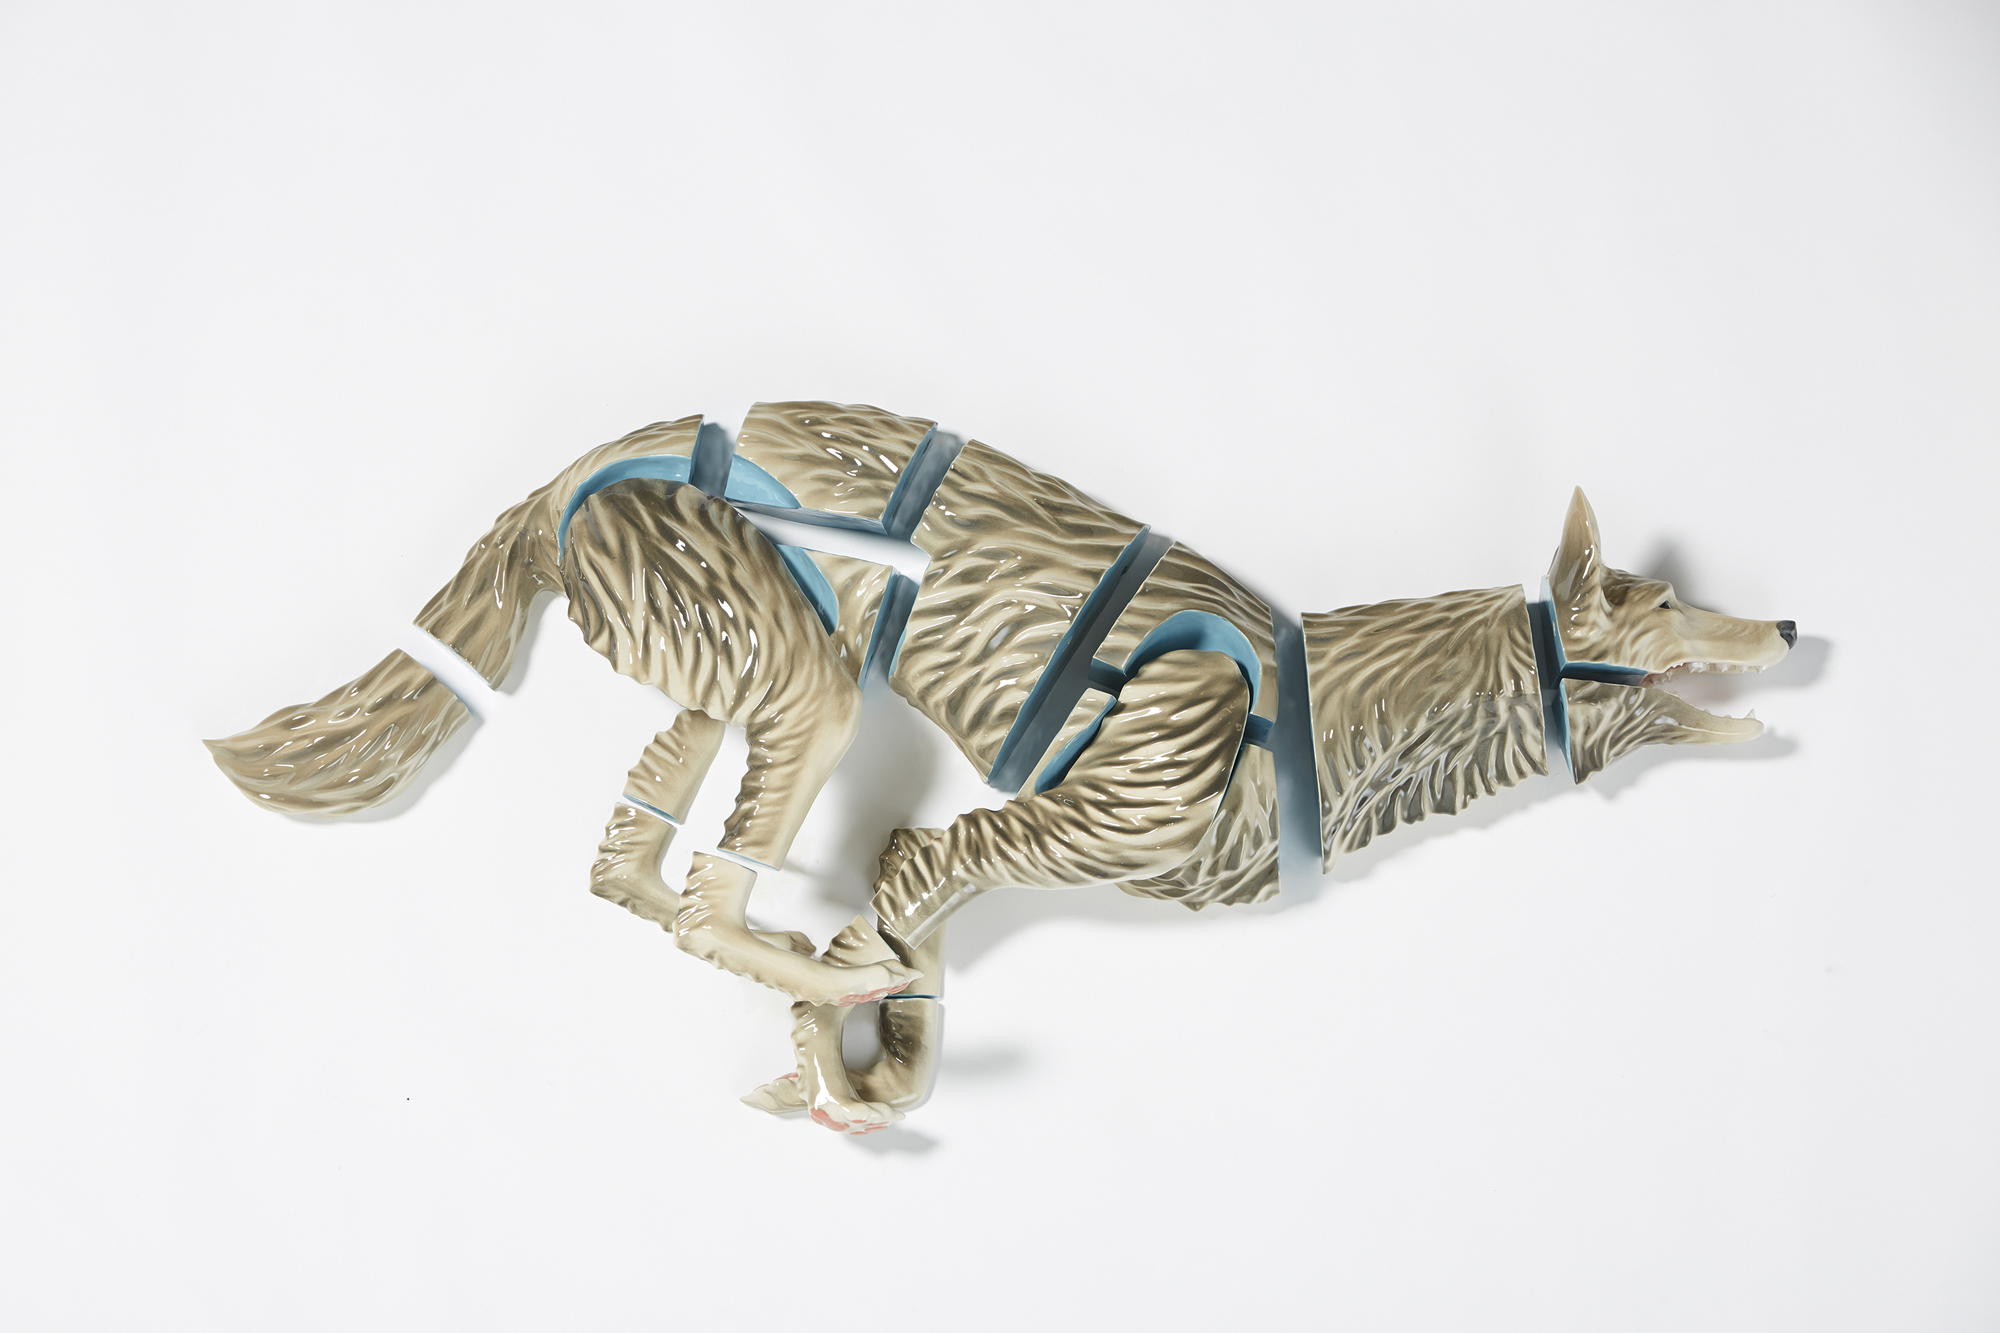 Emmy Lingscheit, Canis Latrans Subdivision I, cast vitreous china, glaze, dimensions variable, 2015. A sculpture of a wolf seen from the side, face to the right side of the image. The wolf appears to be running, its four legs together coiled in potential movement. The sculpture consists of several pieces that are slightly spaced apart. The fur of the wolf is glazed in brown-gray and whites. The areas of the sculpture that should be touching are glazed in blue. Photo courtesy of Emmy Lingscheit.